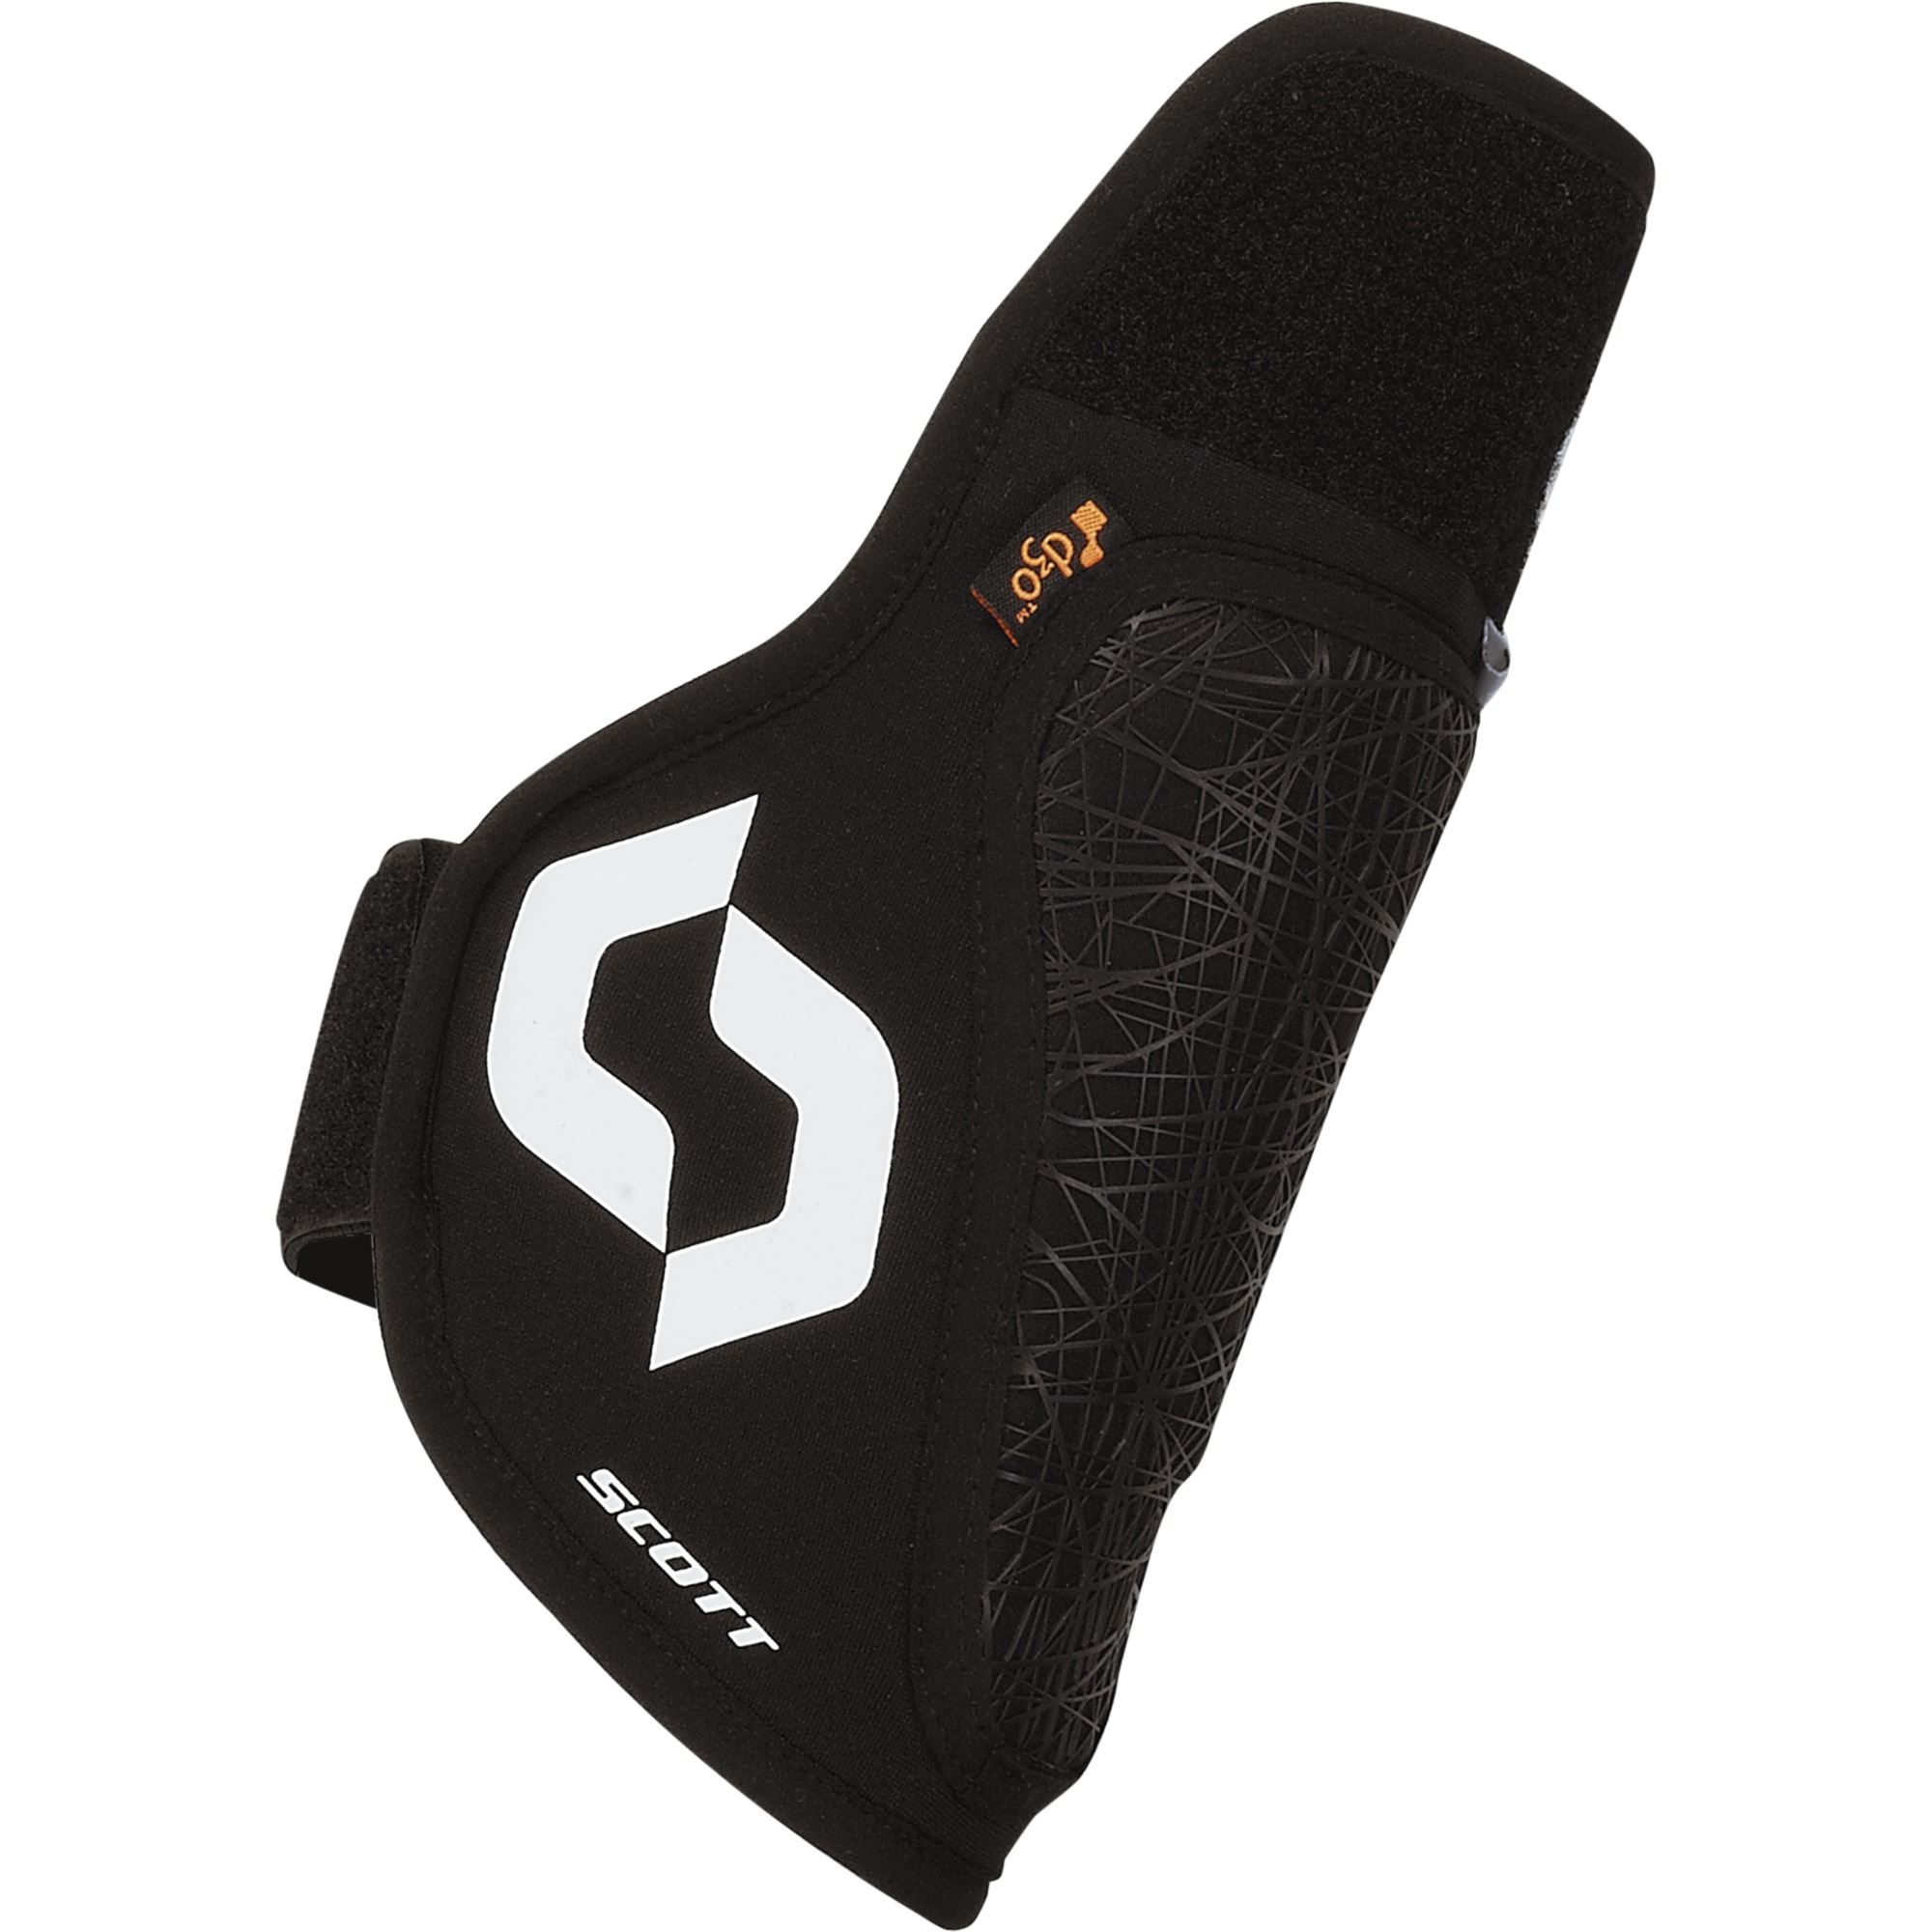 SCOTT Soft Grenade Pro Shin Guards